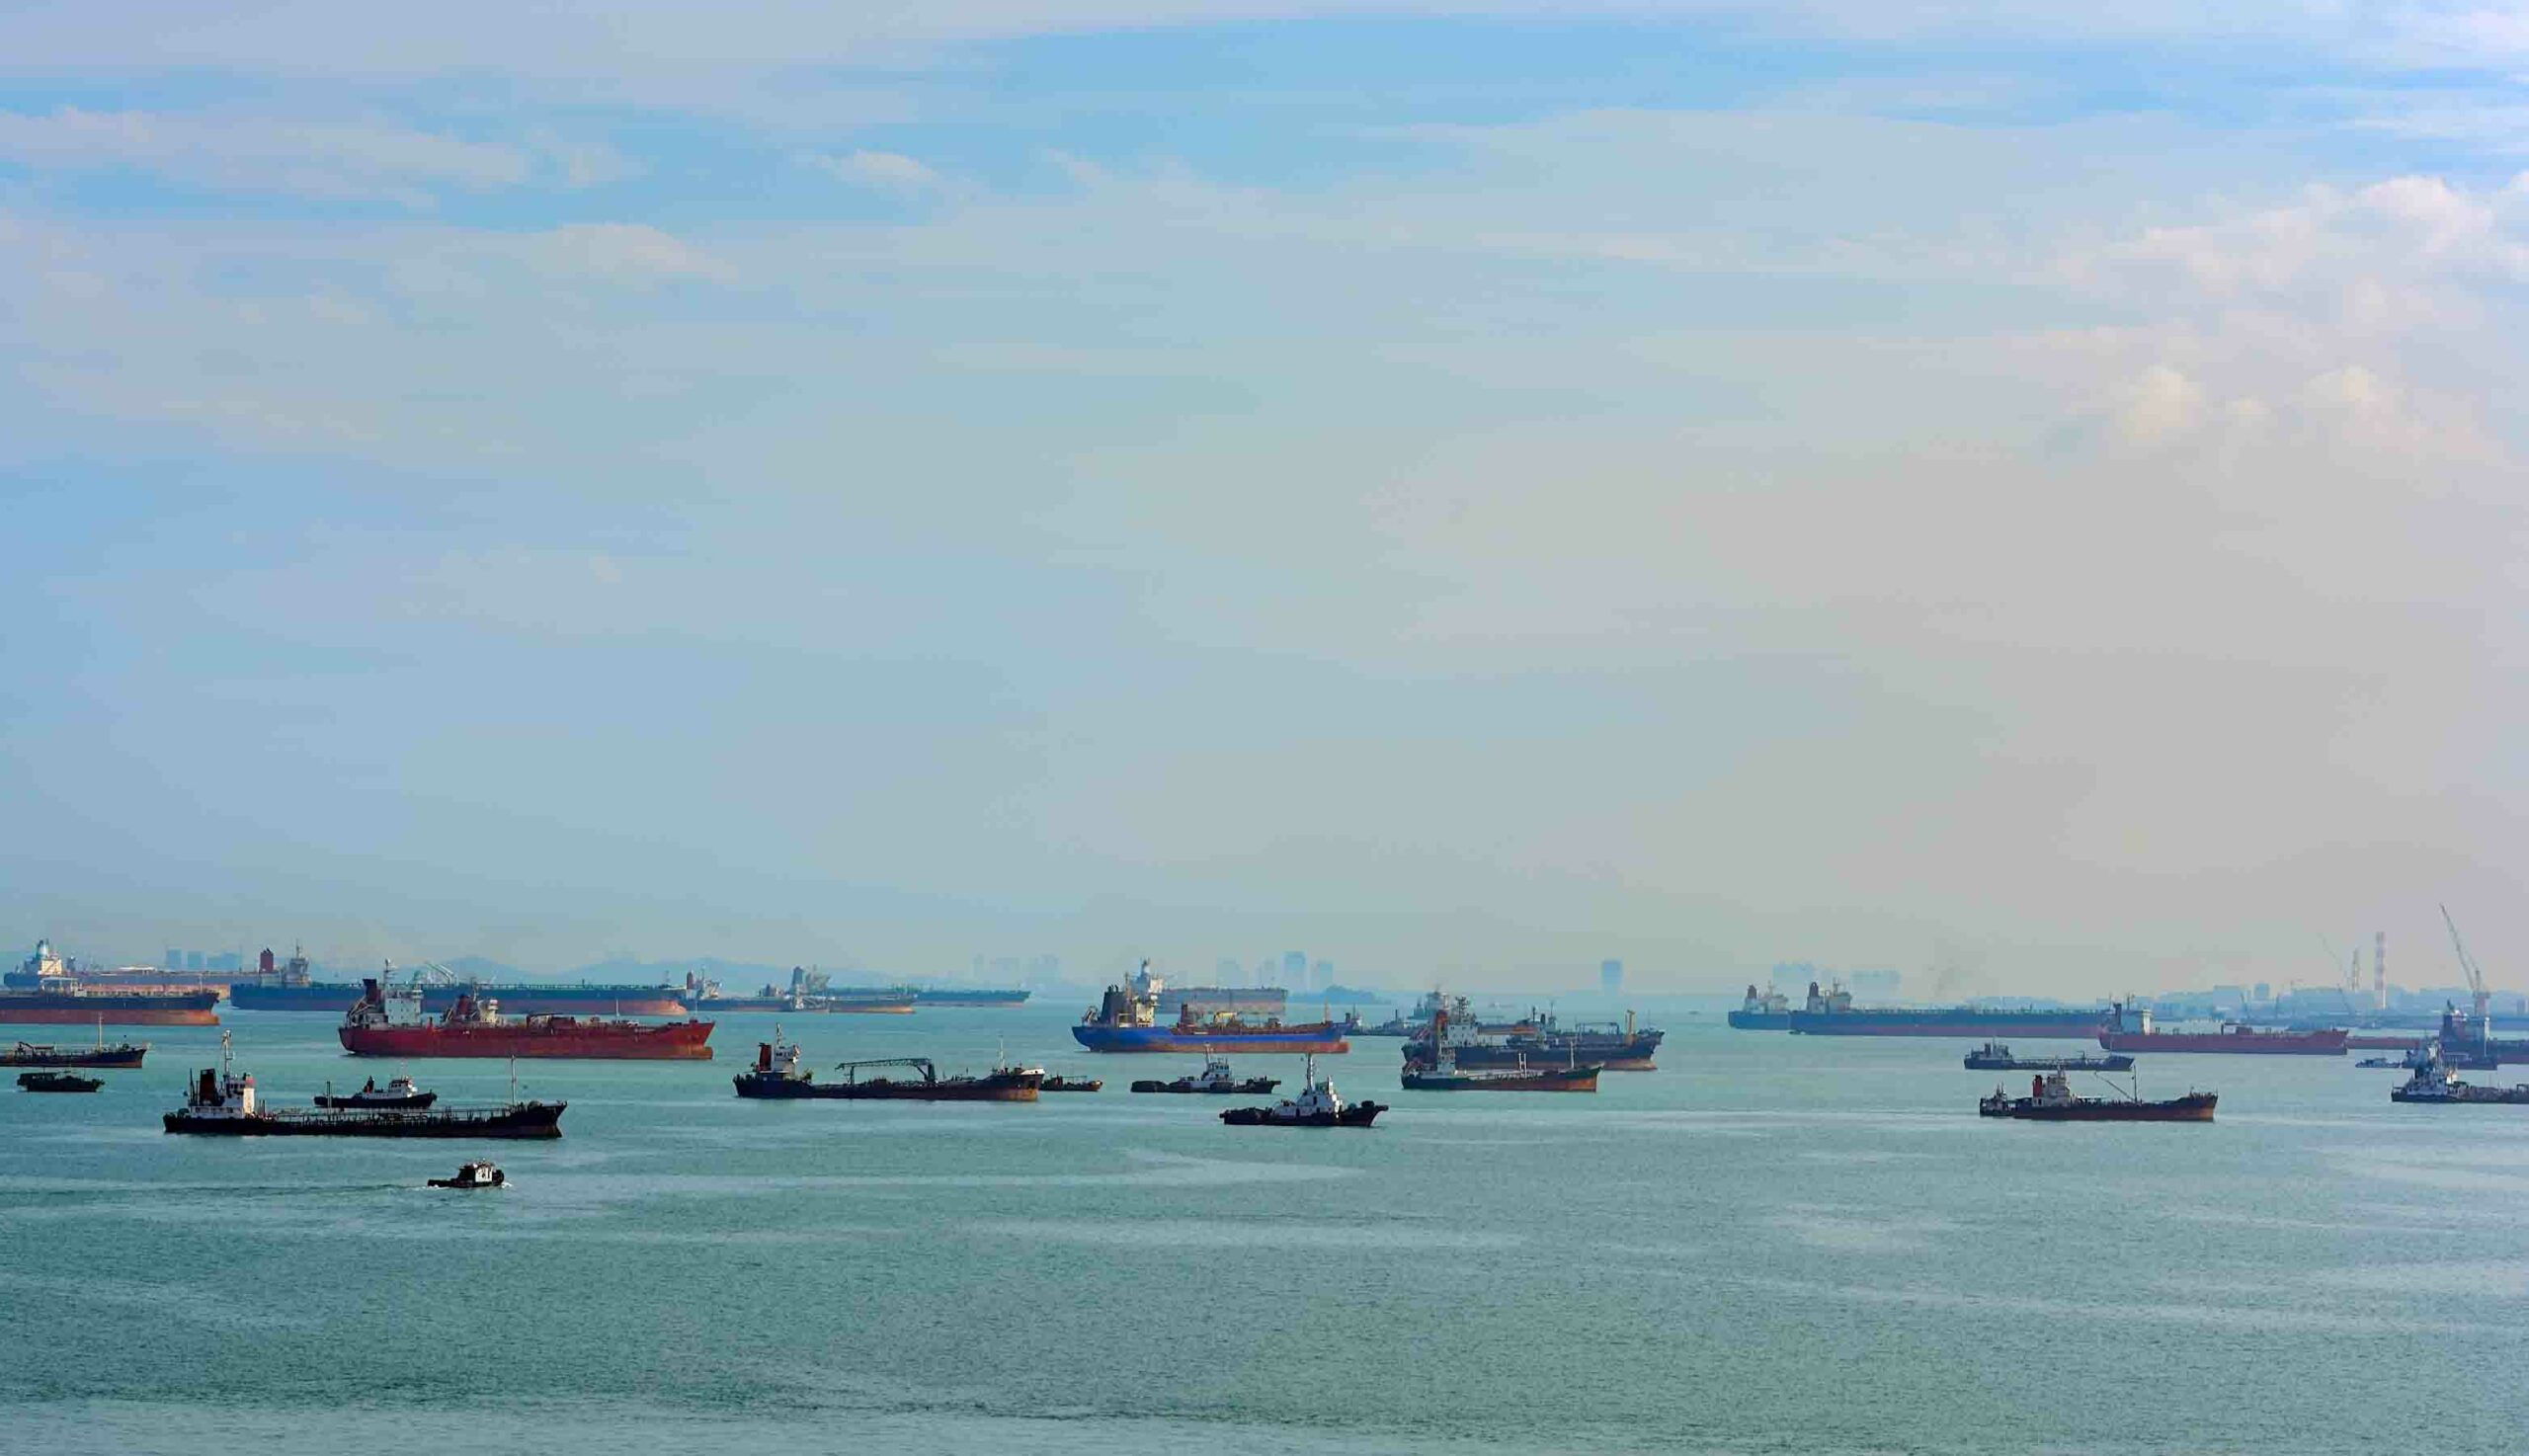 Containervessels congestion spreads across the planet, 304 ships queuing for berth space Apollo Cargo alliance